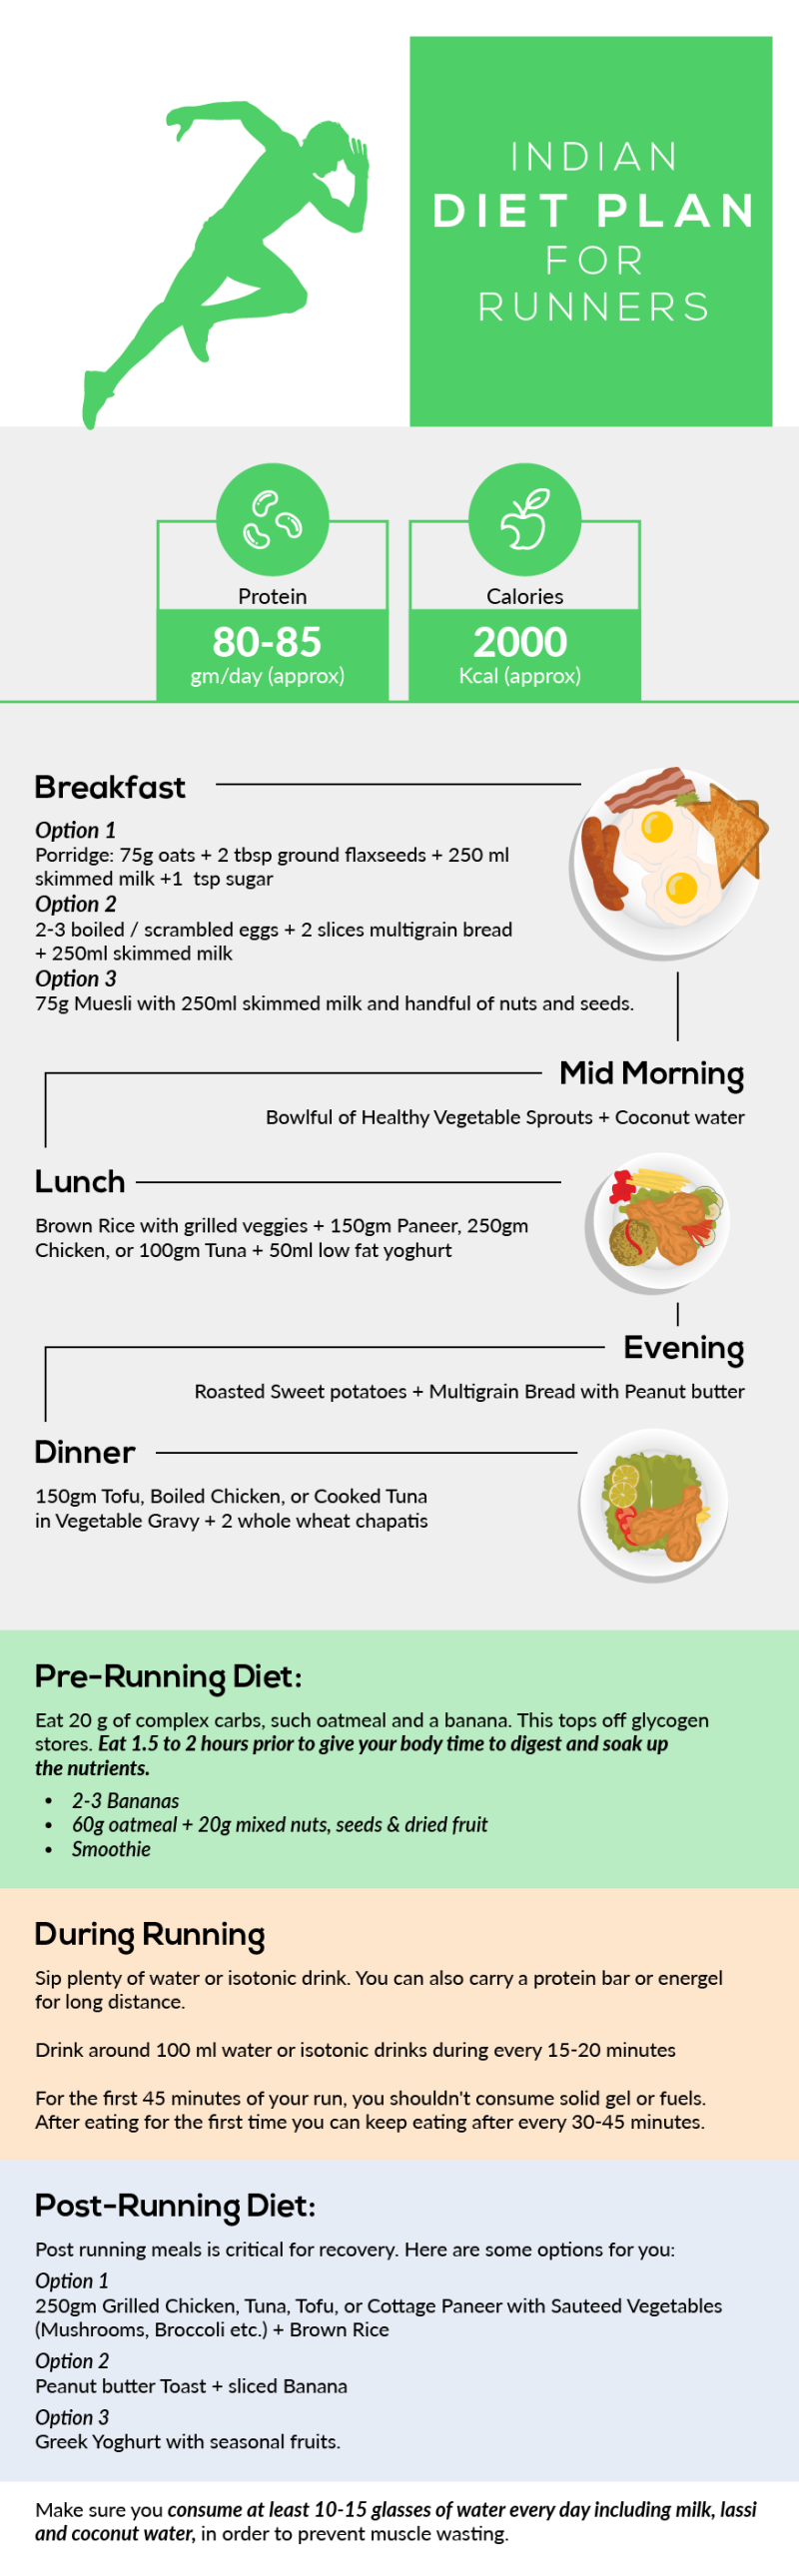 Running Guide for beginners in India - Diet plan for Indian Runners